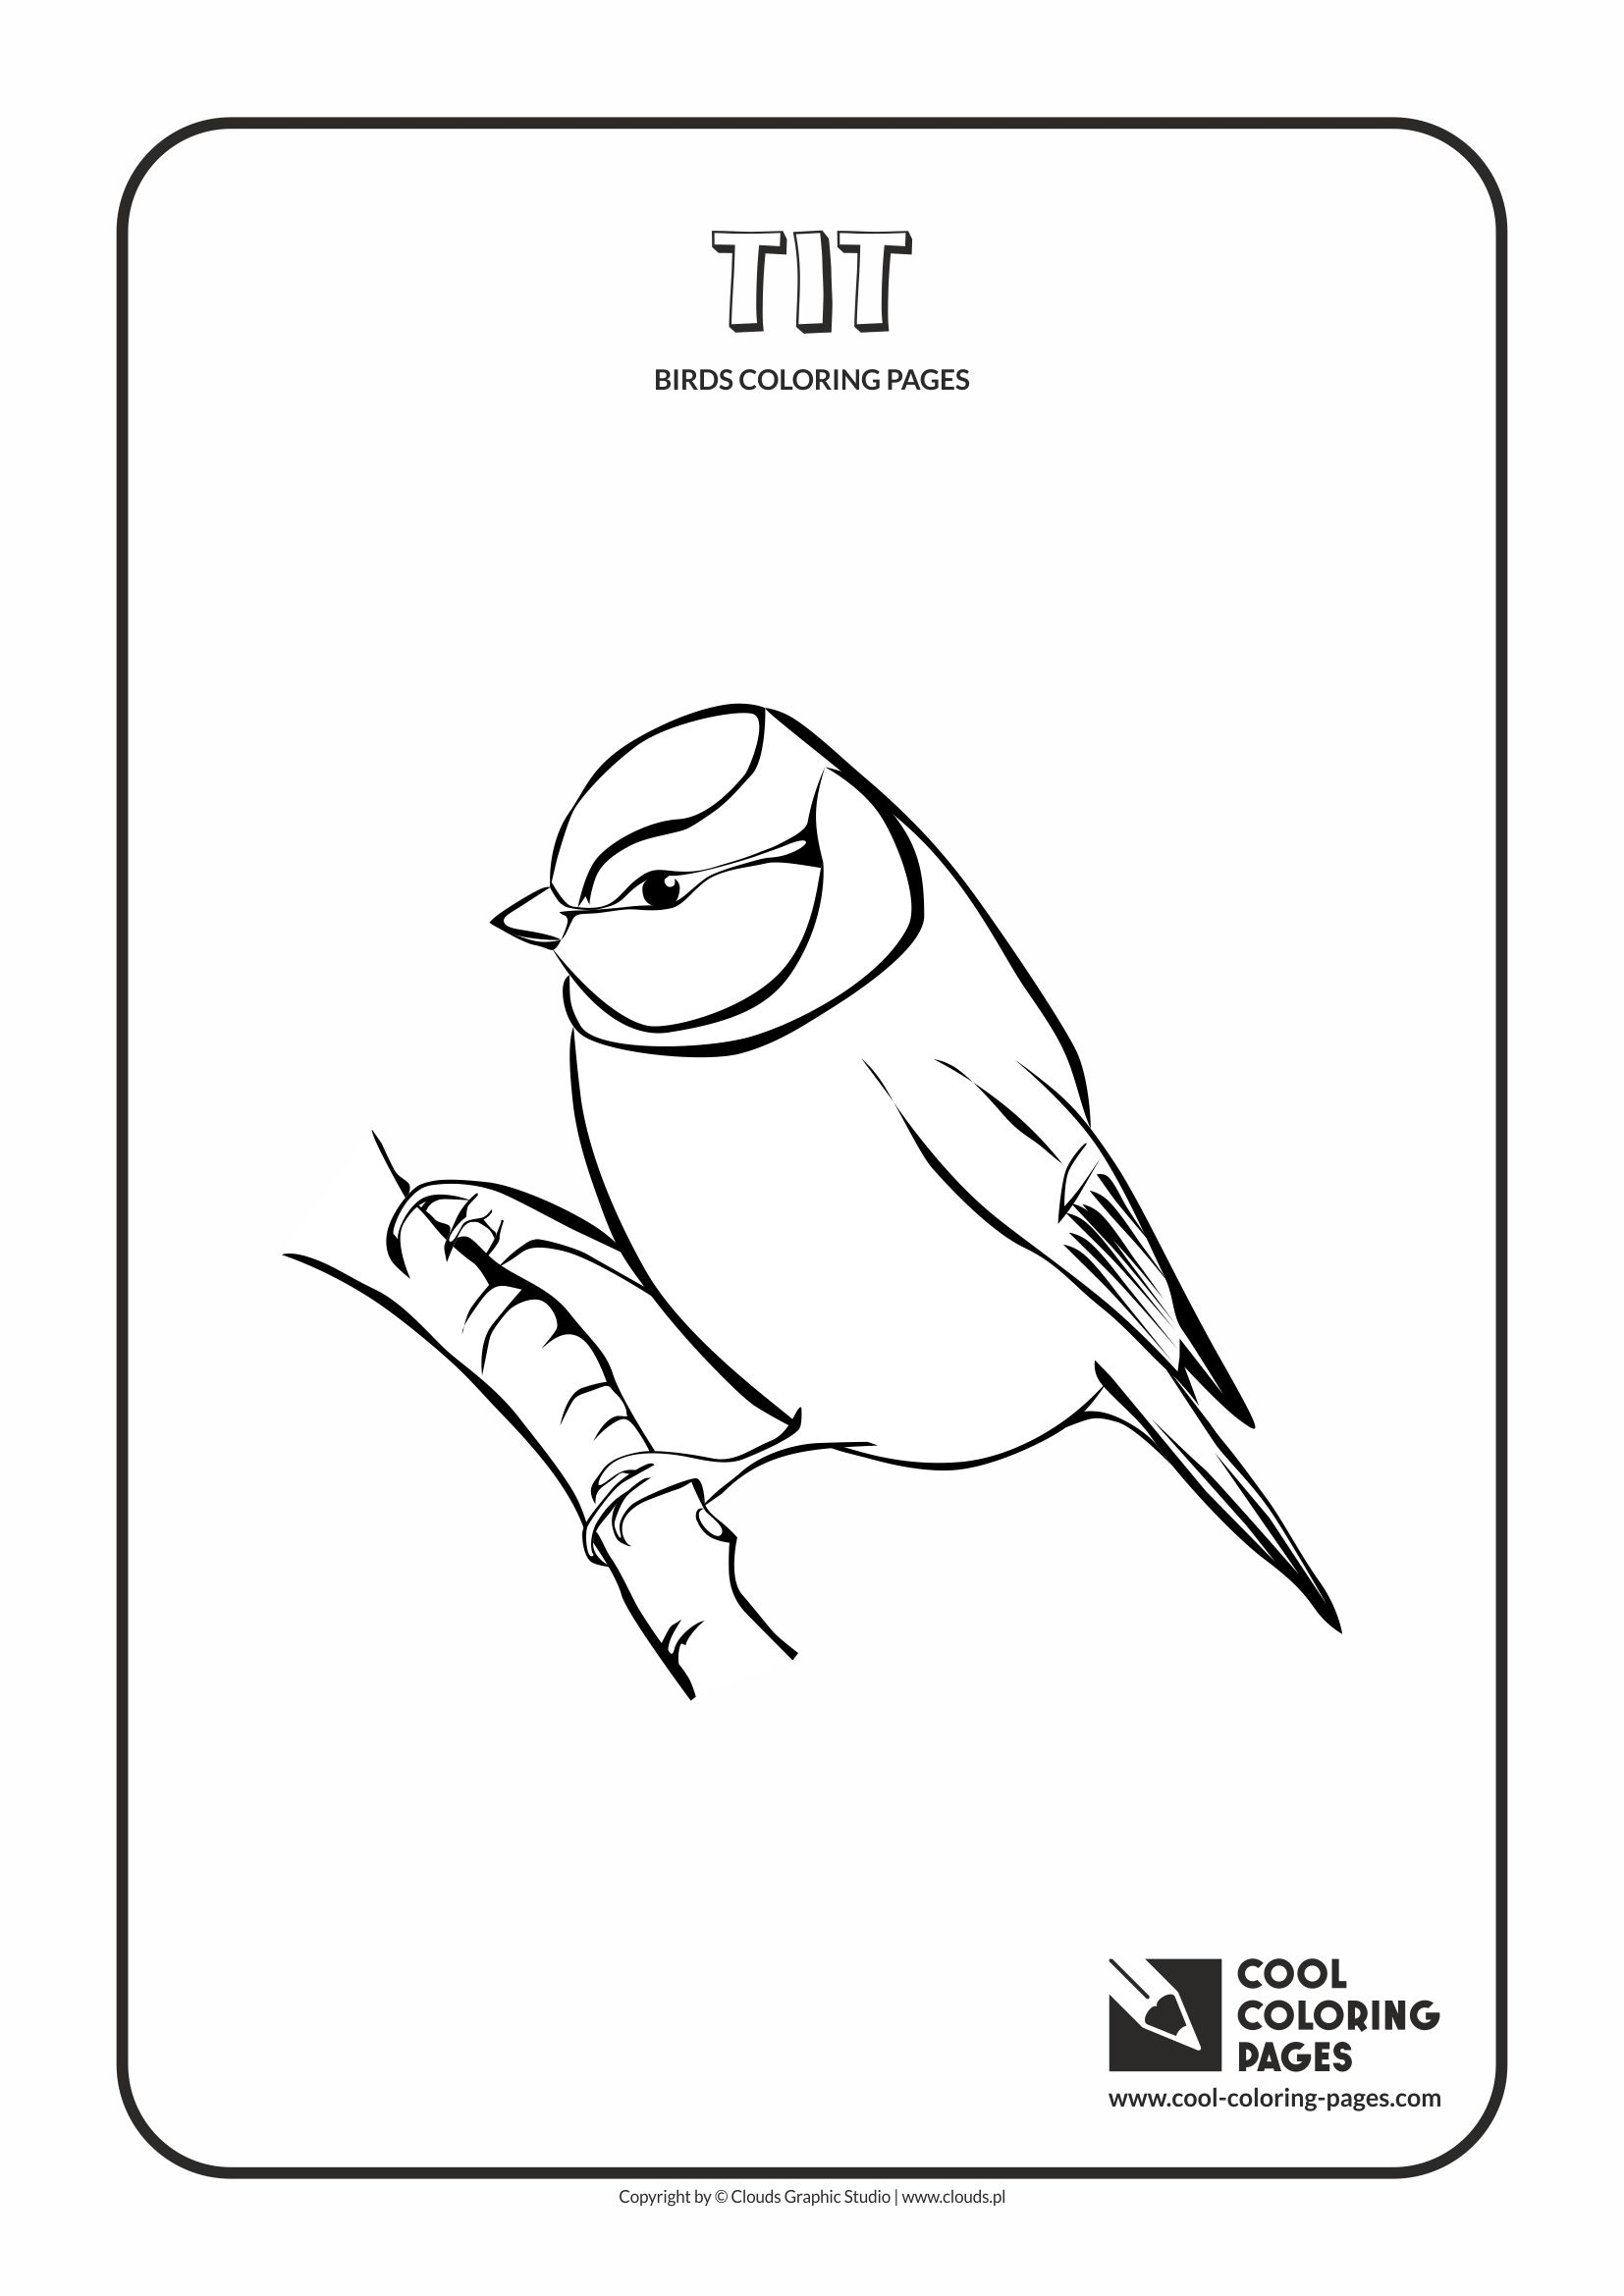 Cool Coloring Pages Birds coloring